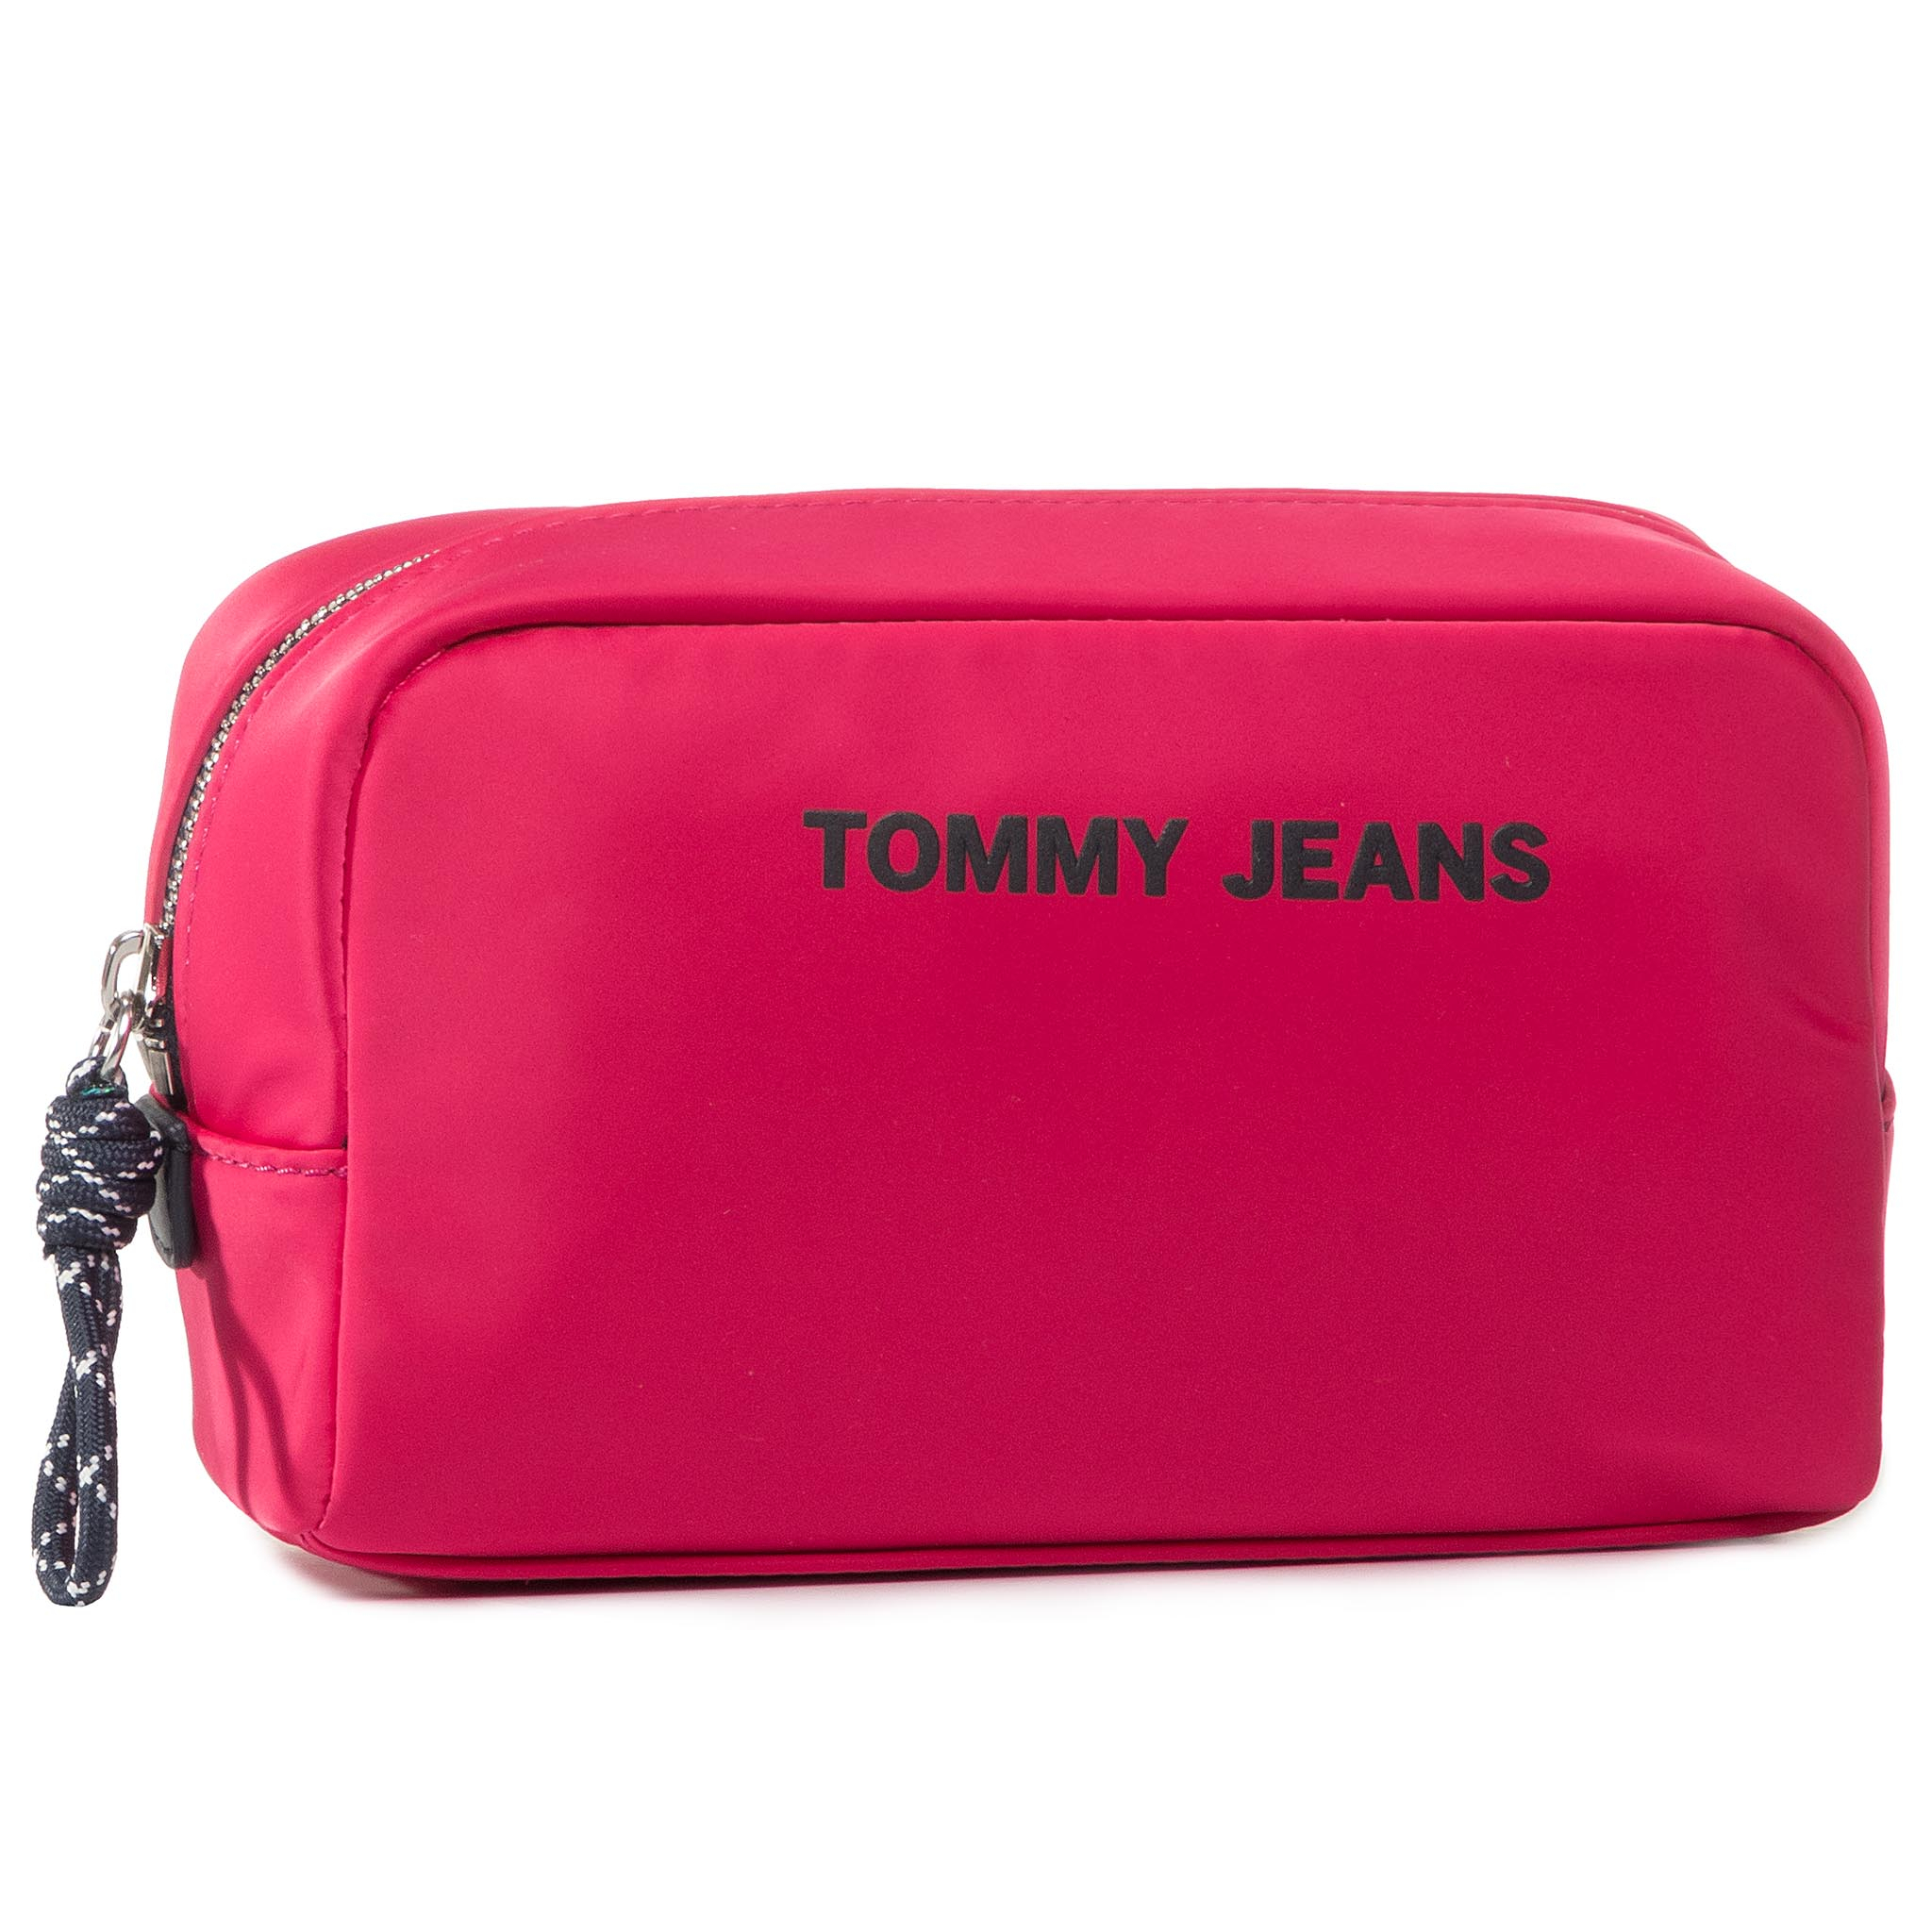 Geantă Pentru Cosmetice Tommy Jeans - Tjw Nautical Mix Washbag Aw0aw08415 Vba imagine epantofi.ro 2021